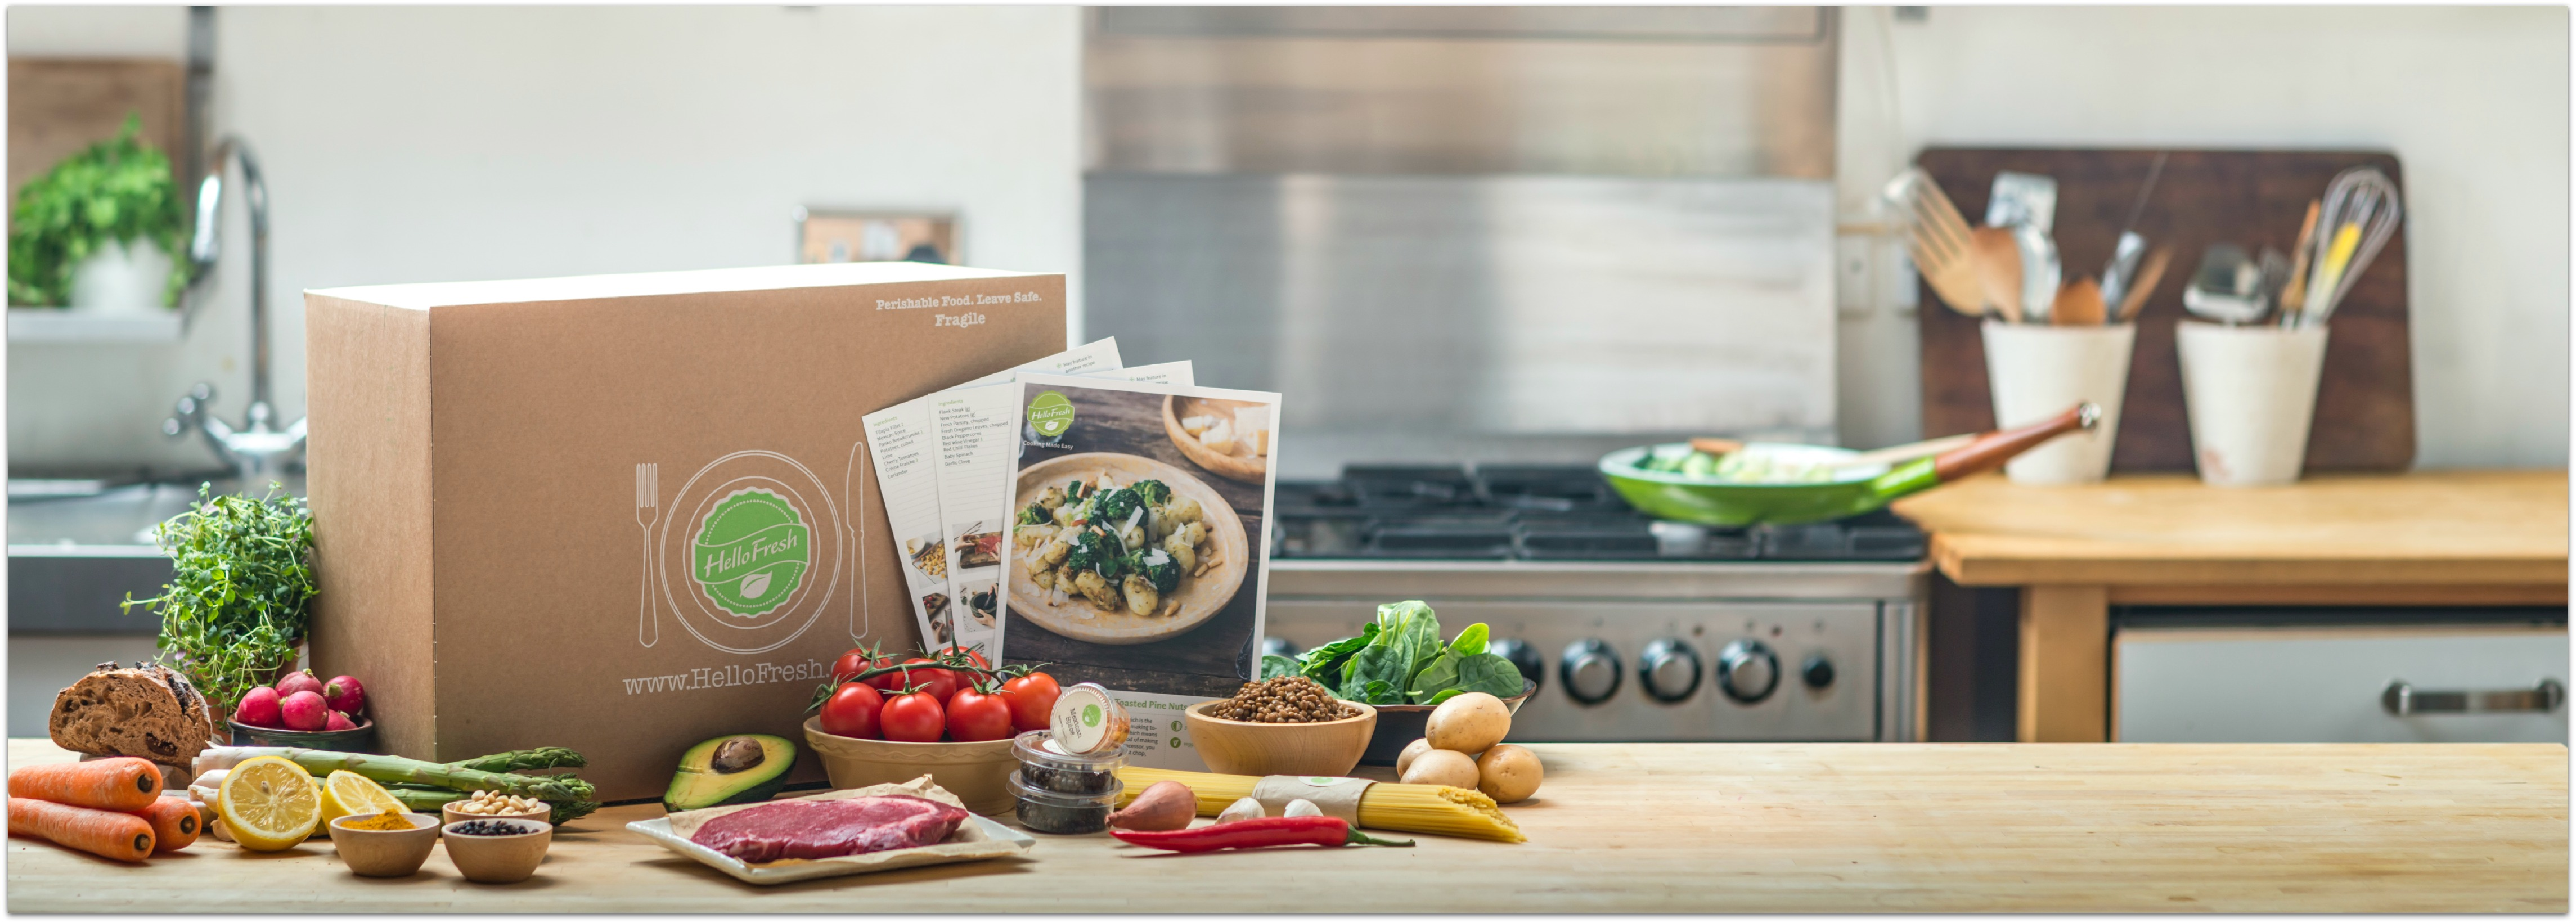 HelloFresh_Box_9449_original